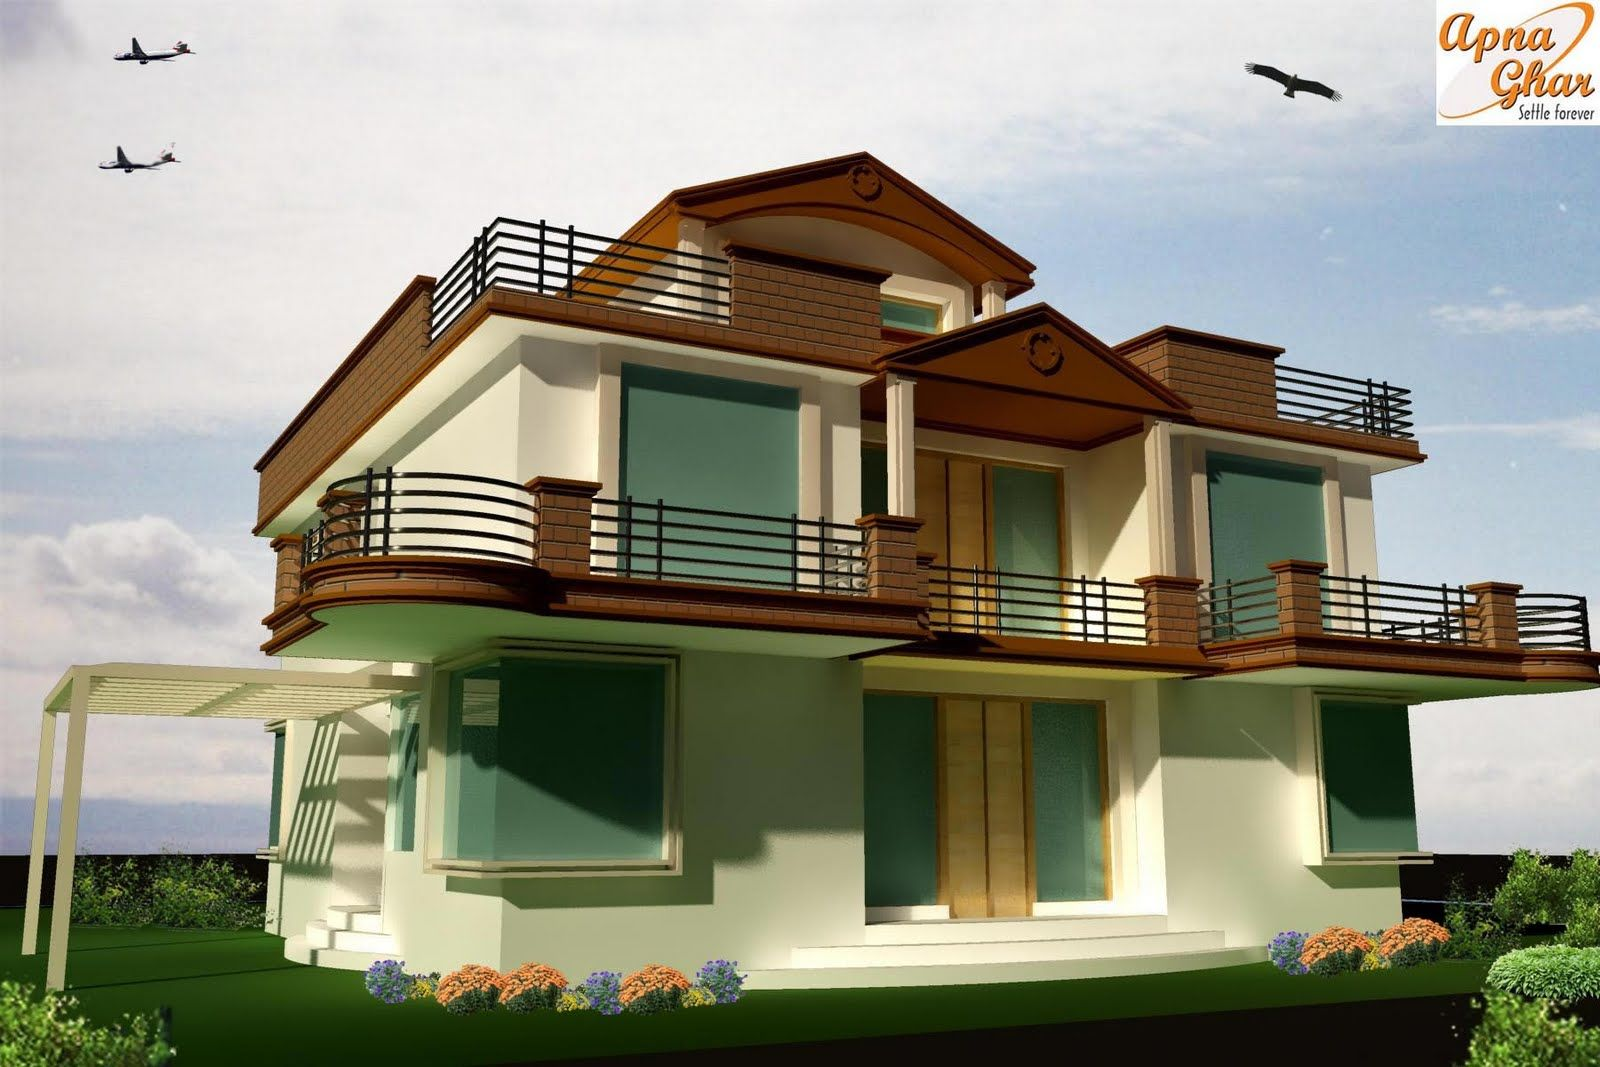 Architectural designs modern architectural house plans Architectural house plan styles